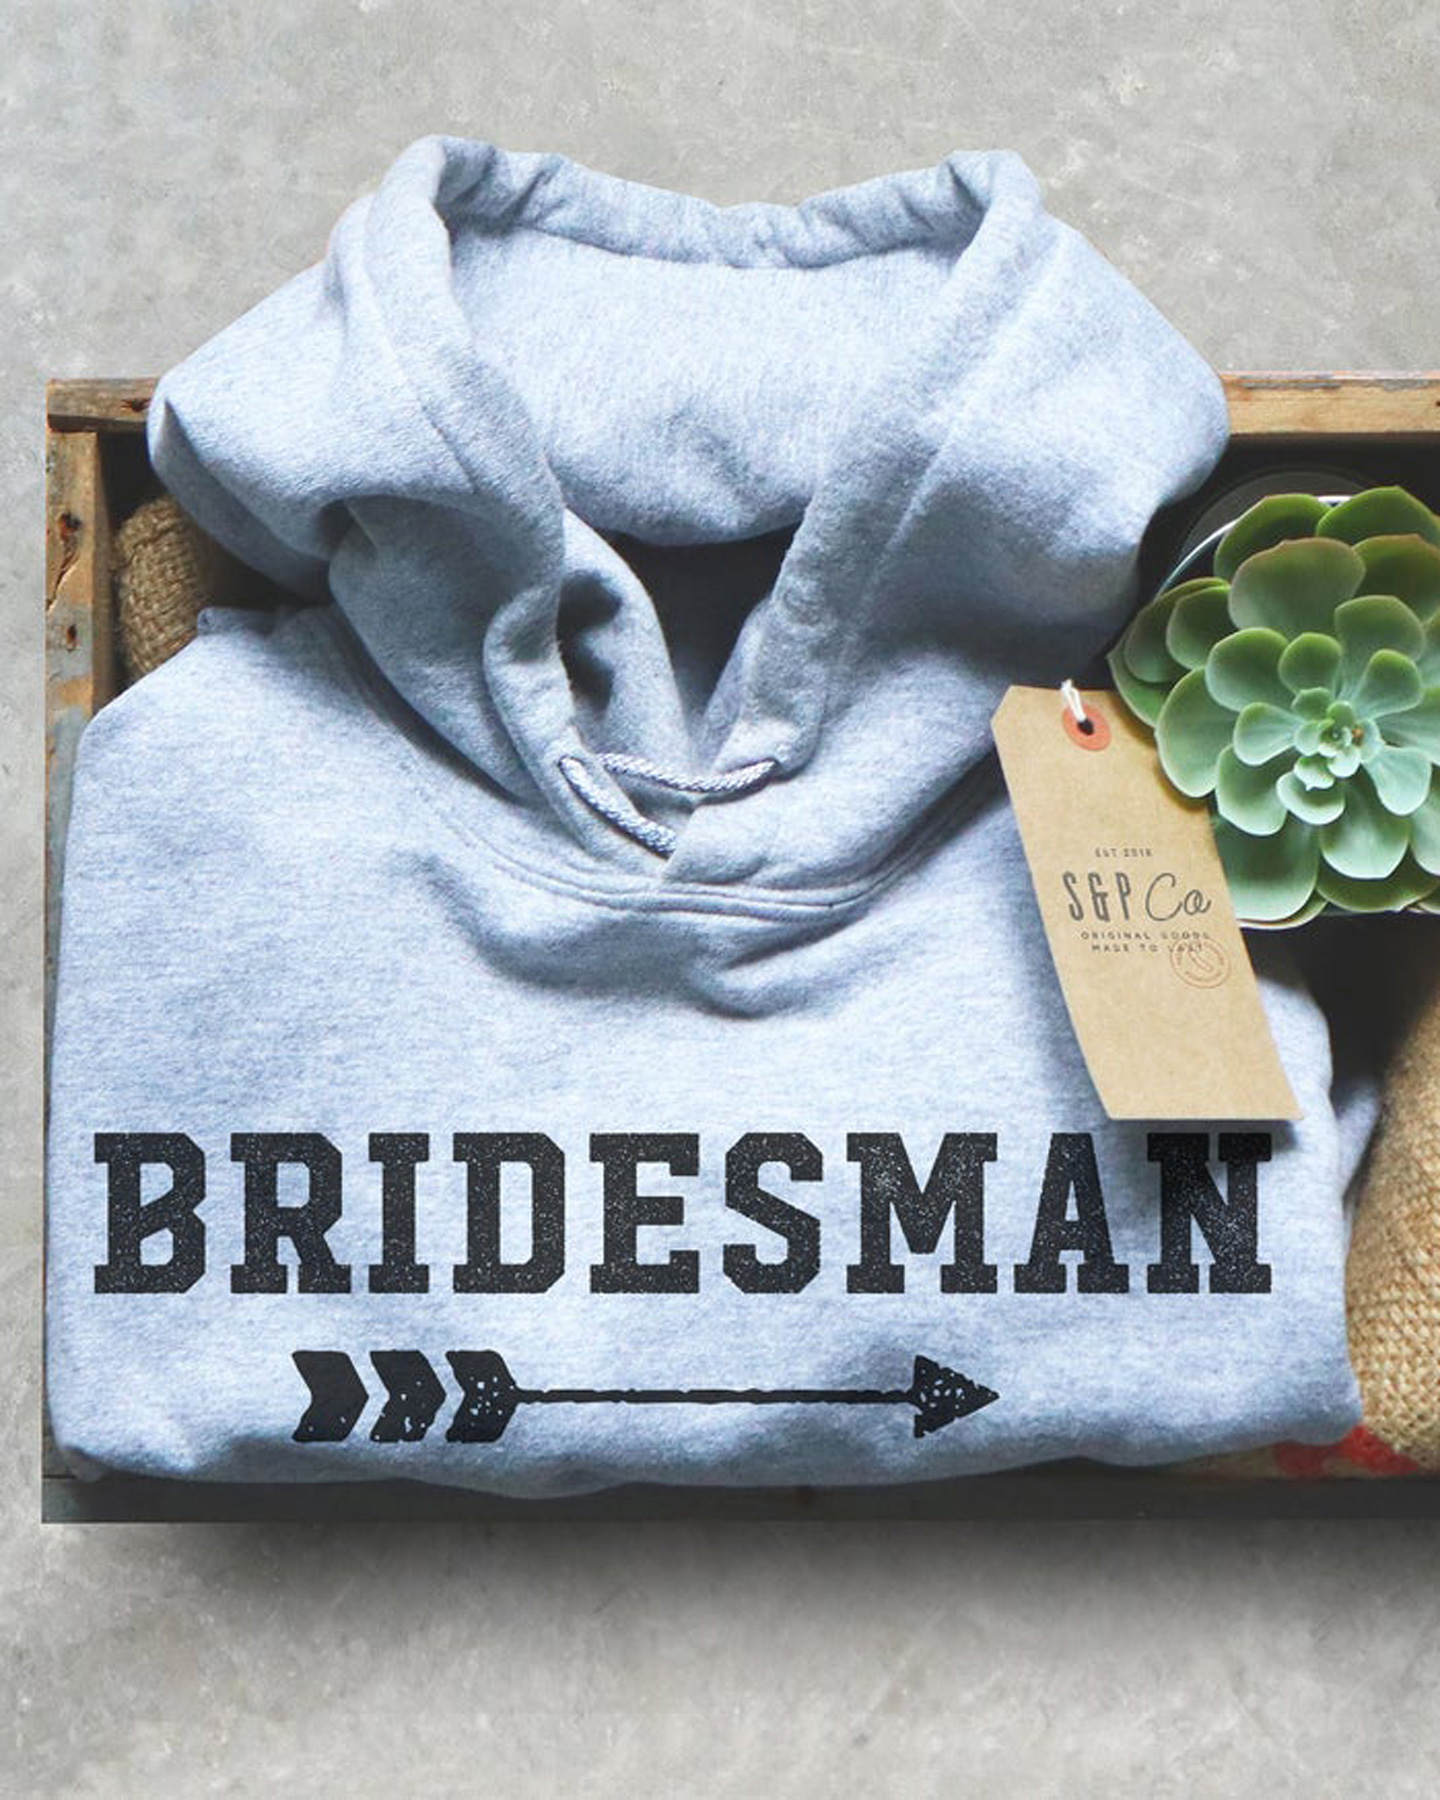 Etsy 2020 Wedding Trends: non-traditional wedding parties